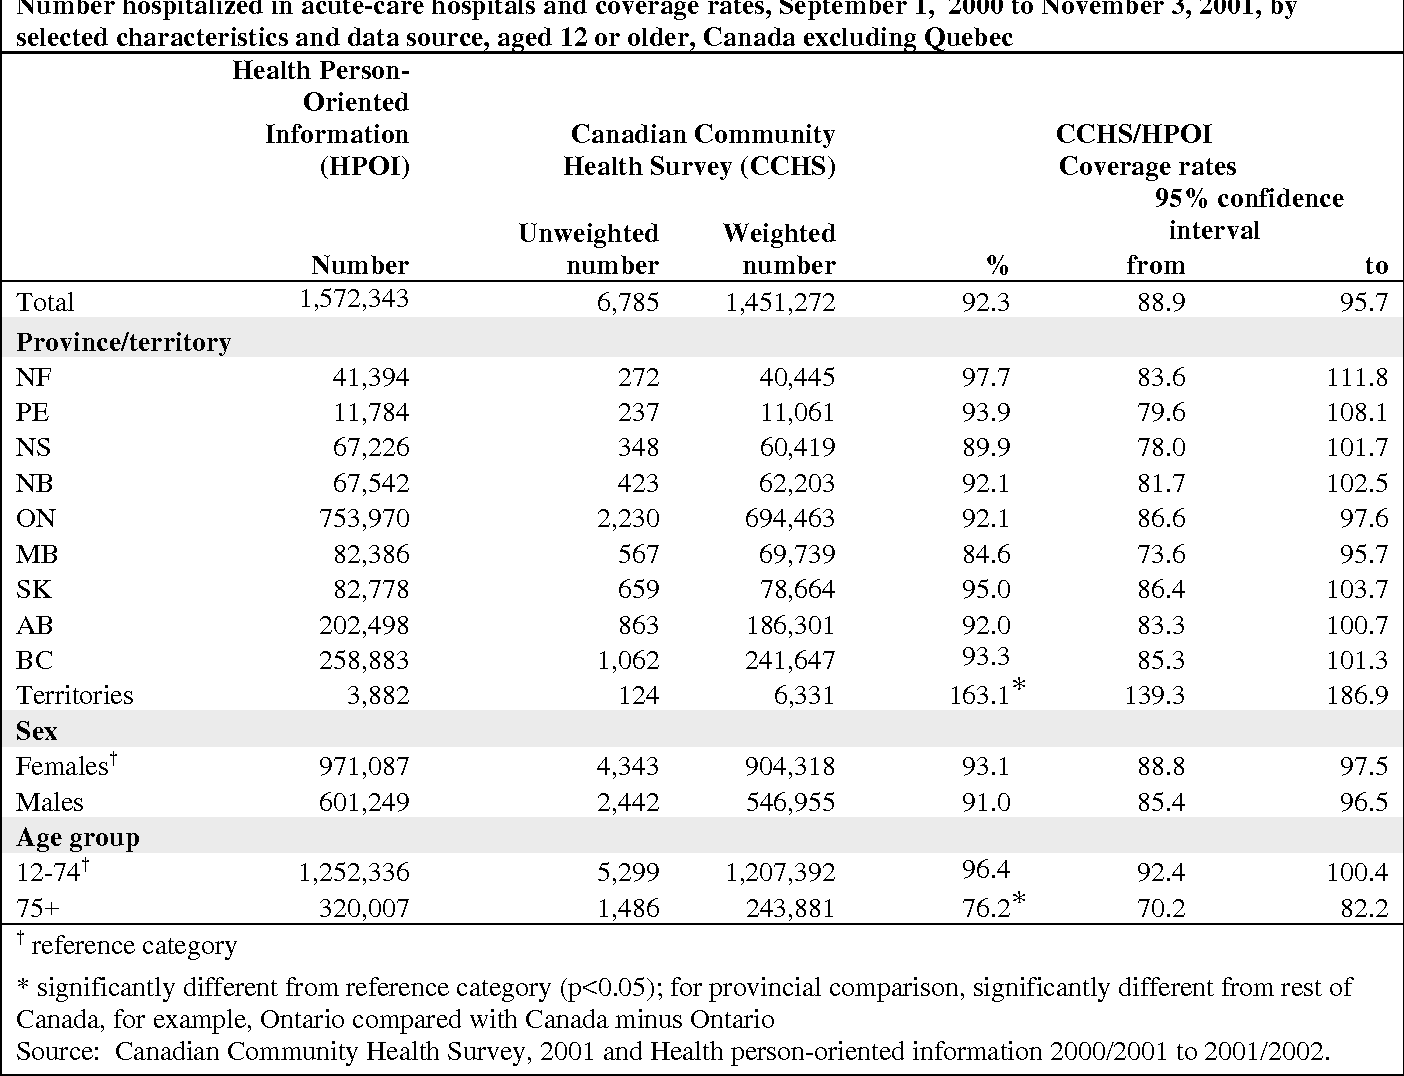 Table 3-1 Number hospitalized in acute-care hospitals and coverage rates, September 1, 2000 to November 3, 2001, by selected characteristics and data source, aged 12 or older, Canada excluding Quebec